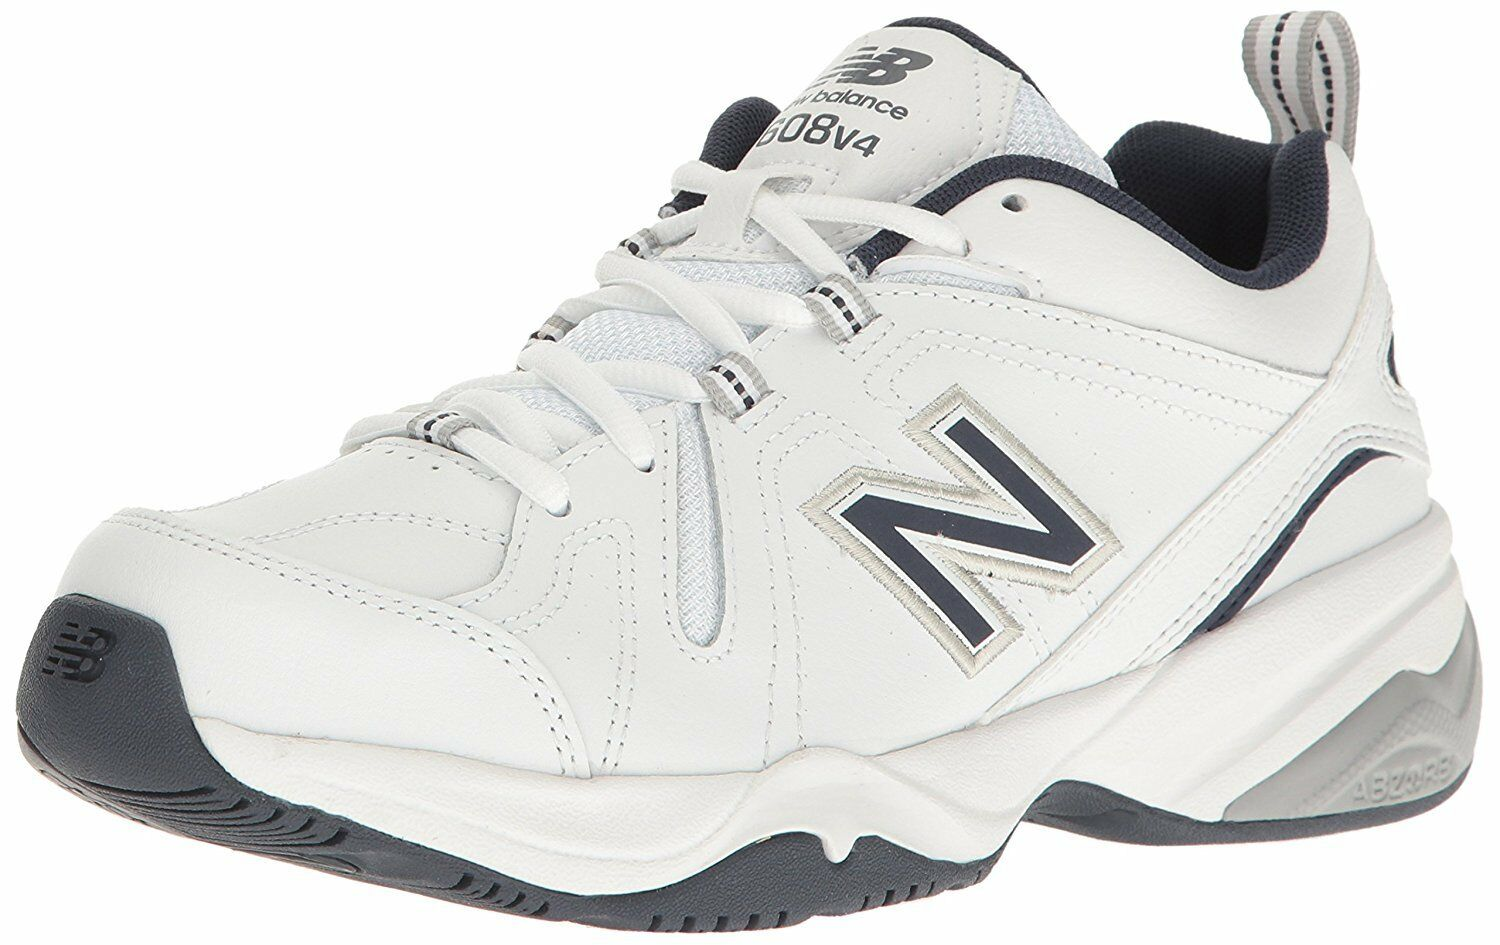 New Balance Men's MX608v4 Training shoes, White Navy,